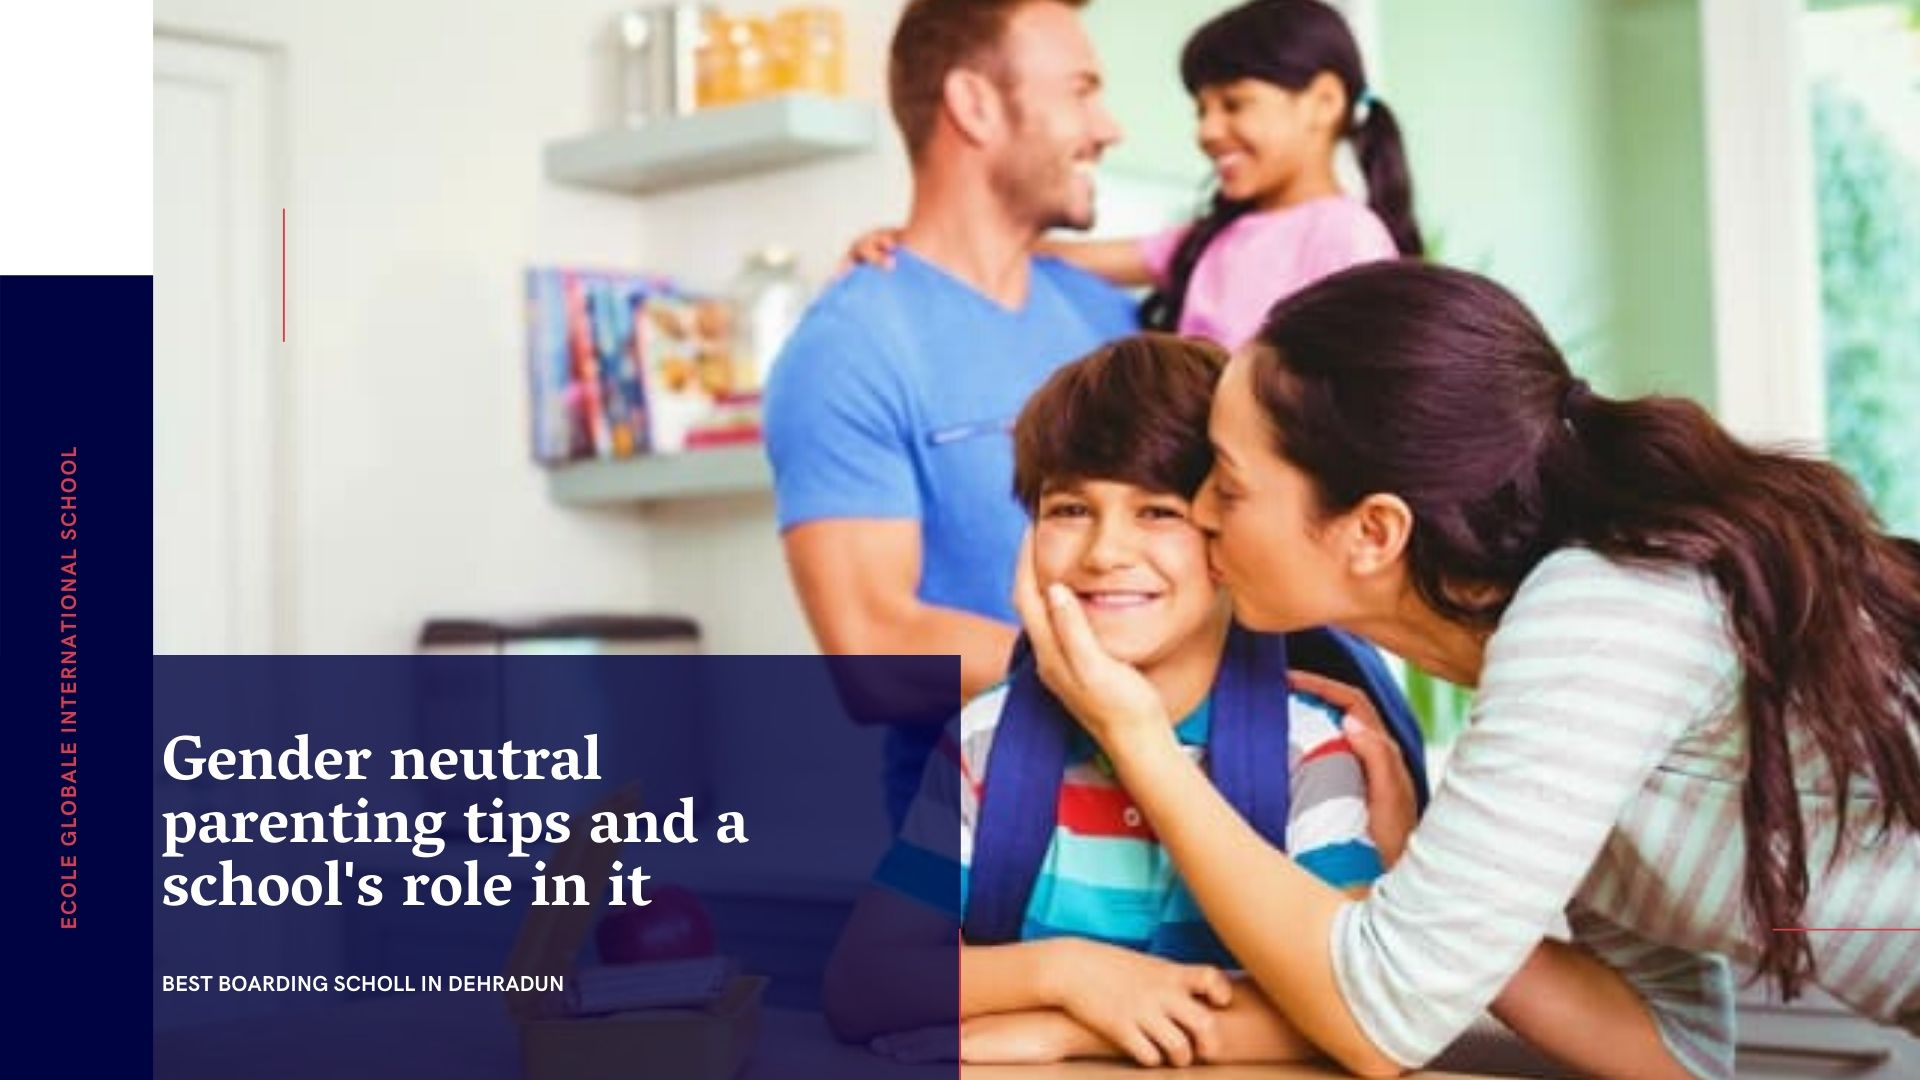 Gender neutral parenting tips and a school's role in it